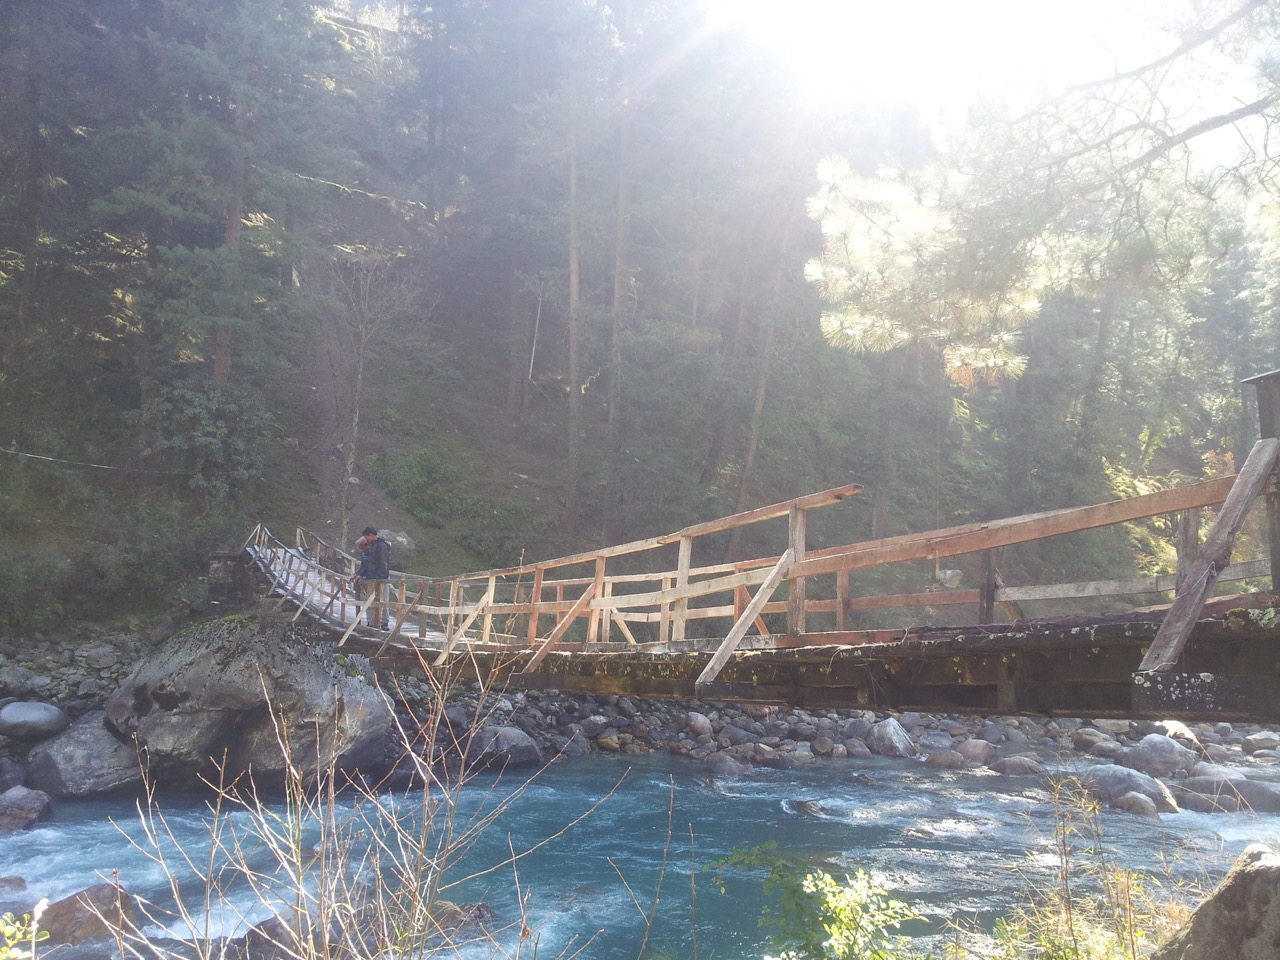 I crossed this wooden bridge and asked the two men for directions.